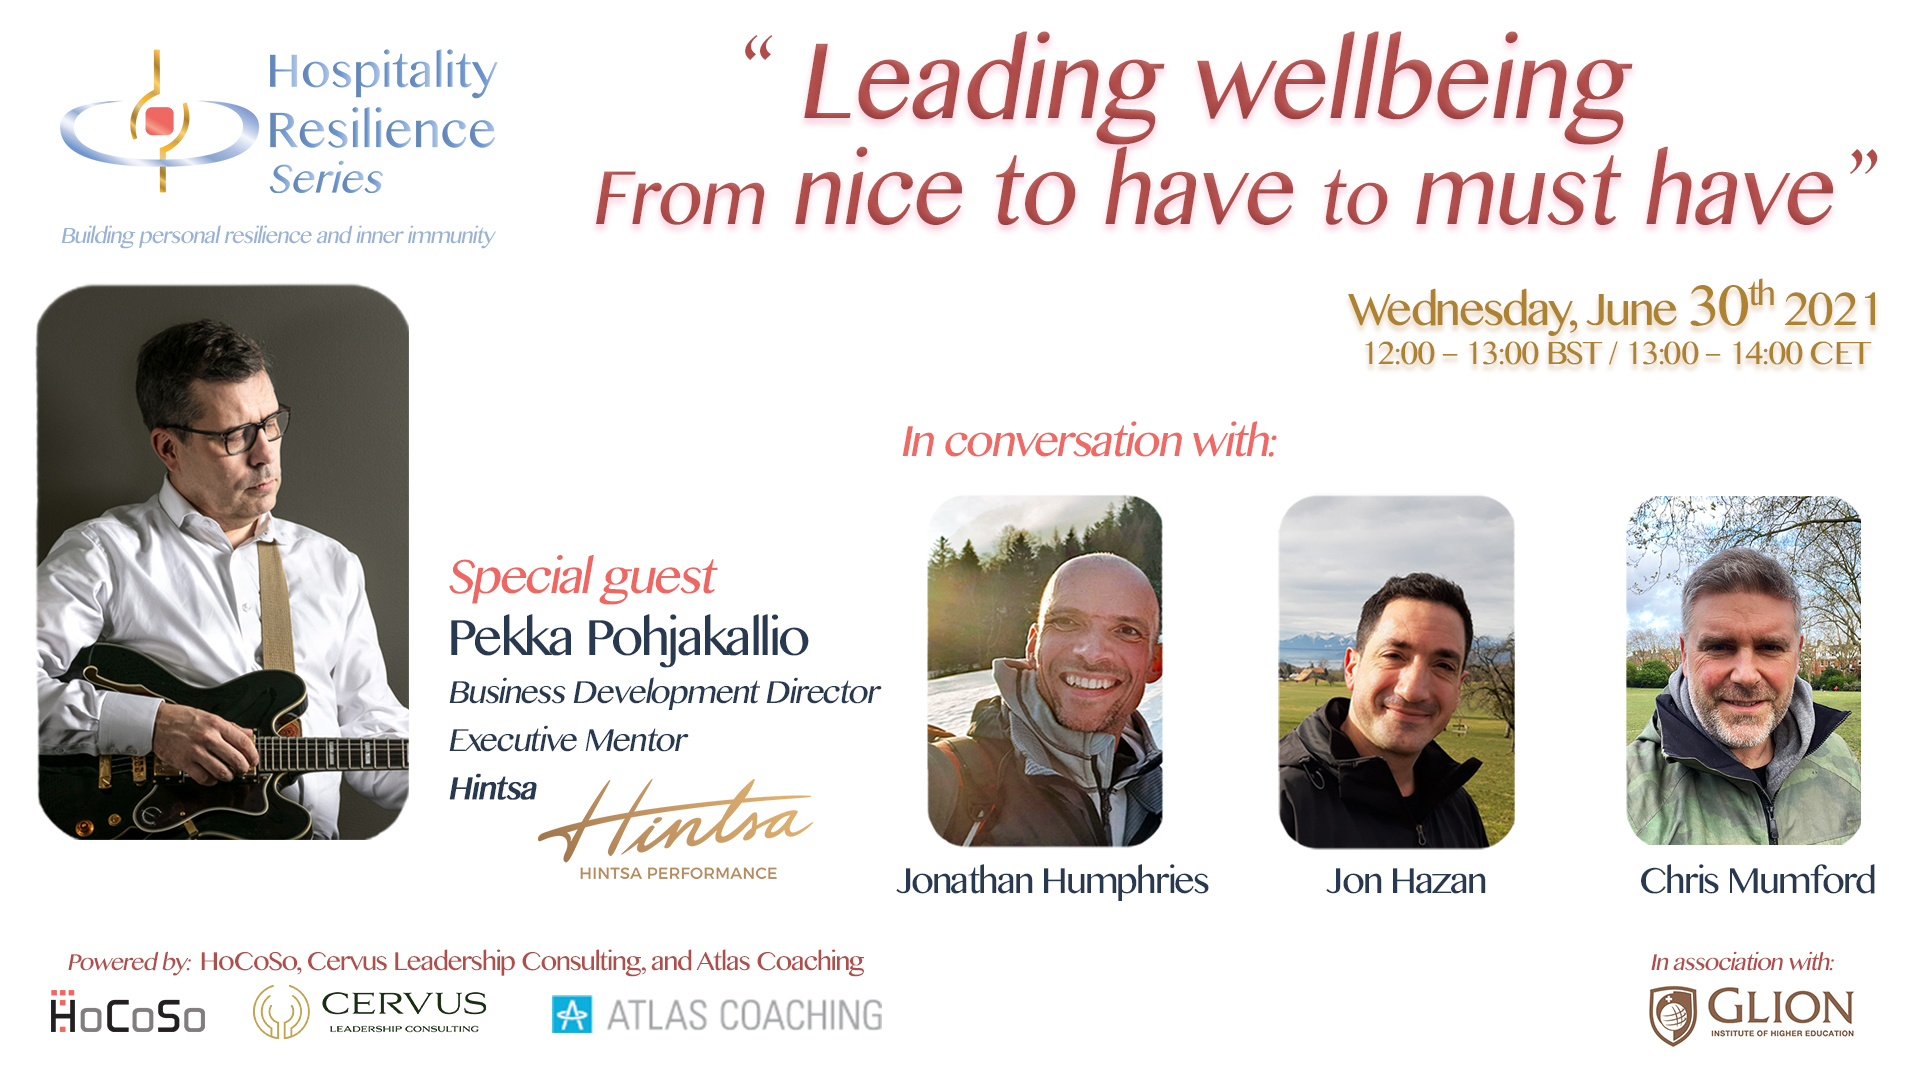 Leading Wellbeing - From nice to have to must have - Pekka Pohjakallio for the Hospitality Resilience Series